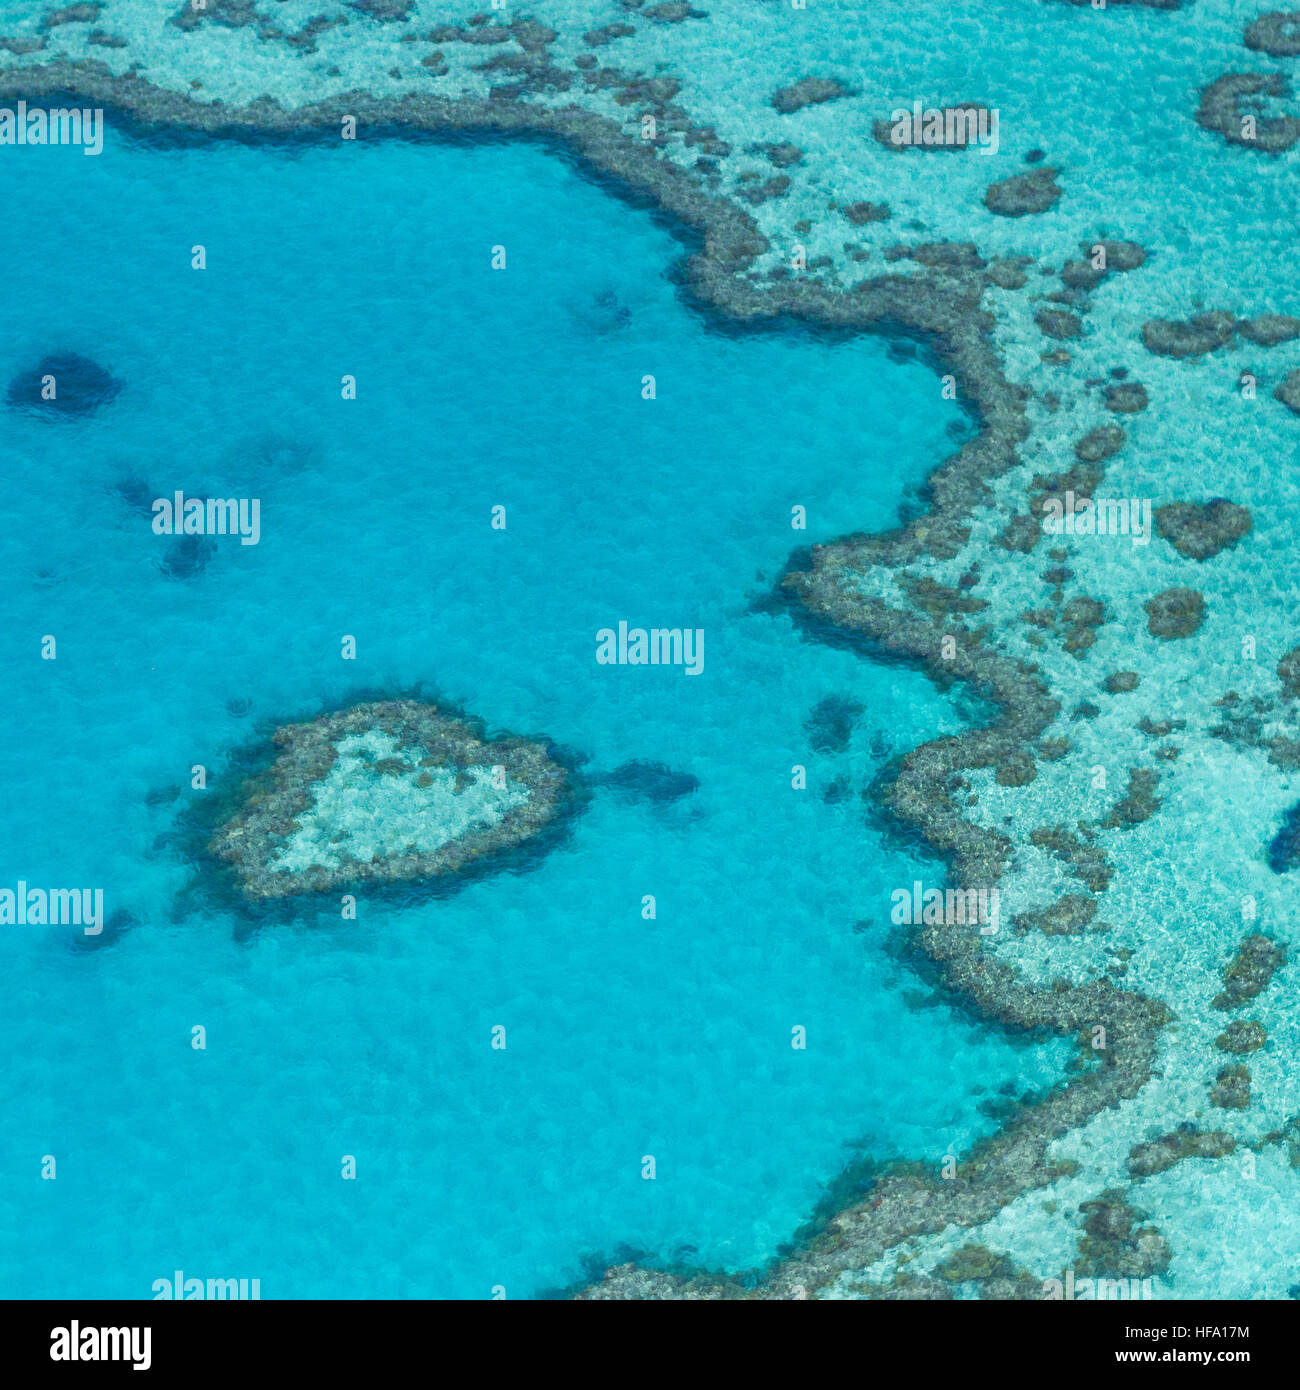 Great Barrier Reef from above, Queensland, Australia - Stock Image